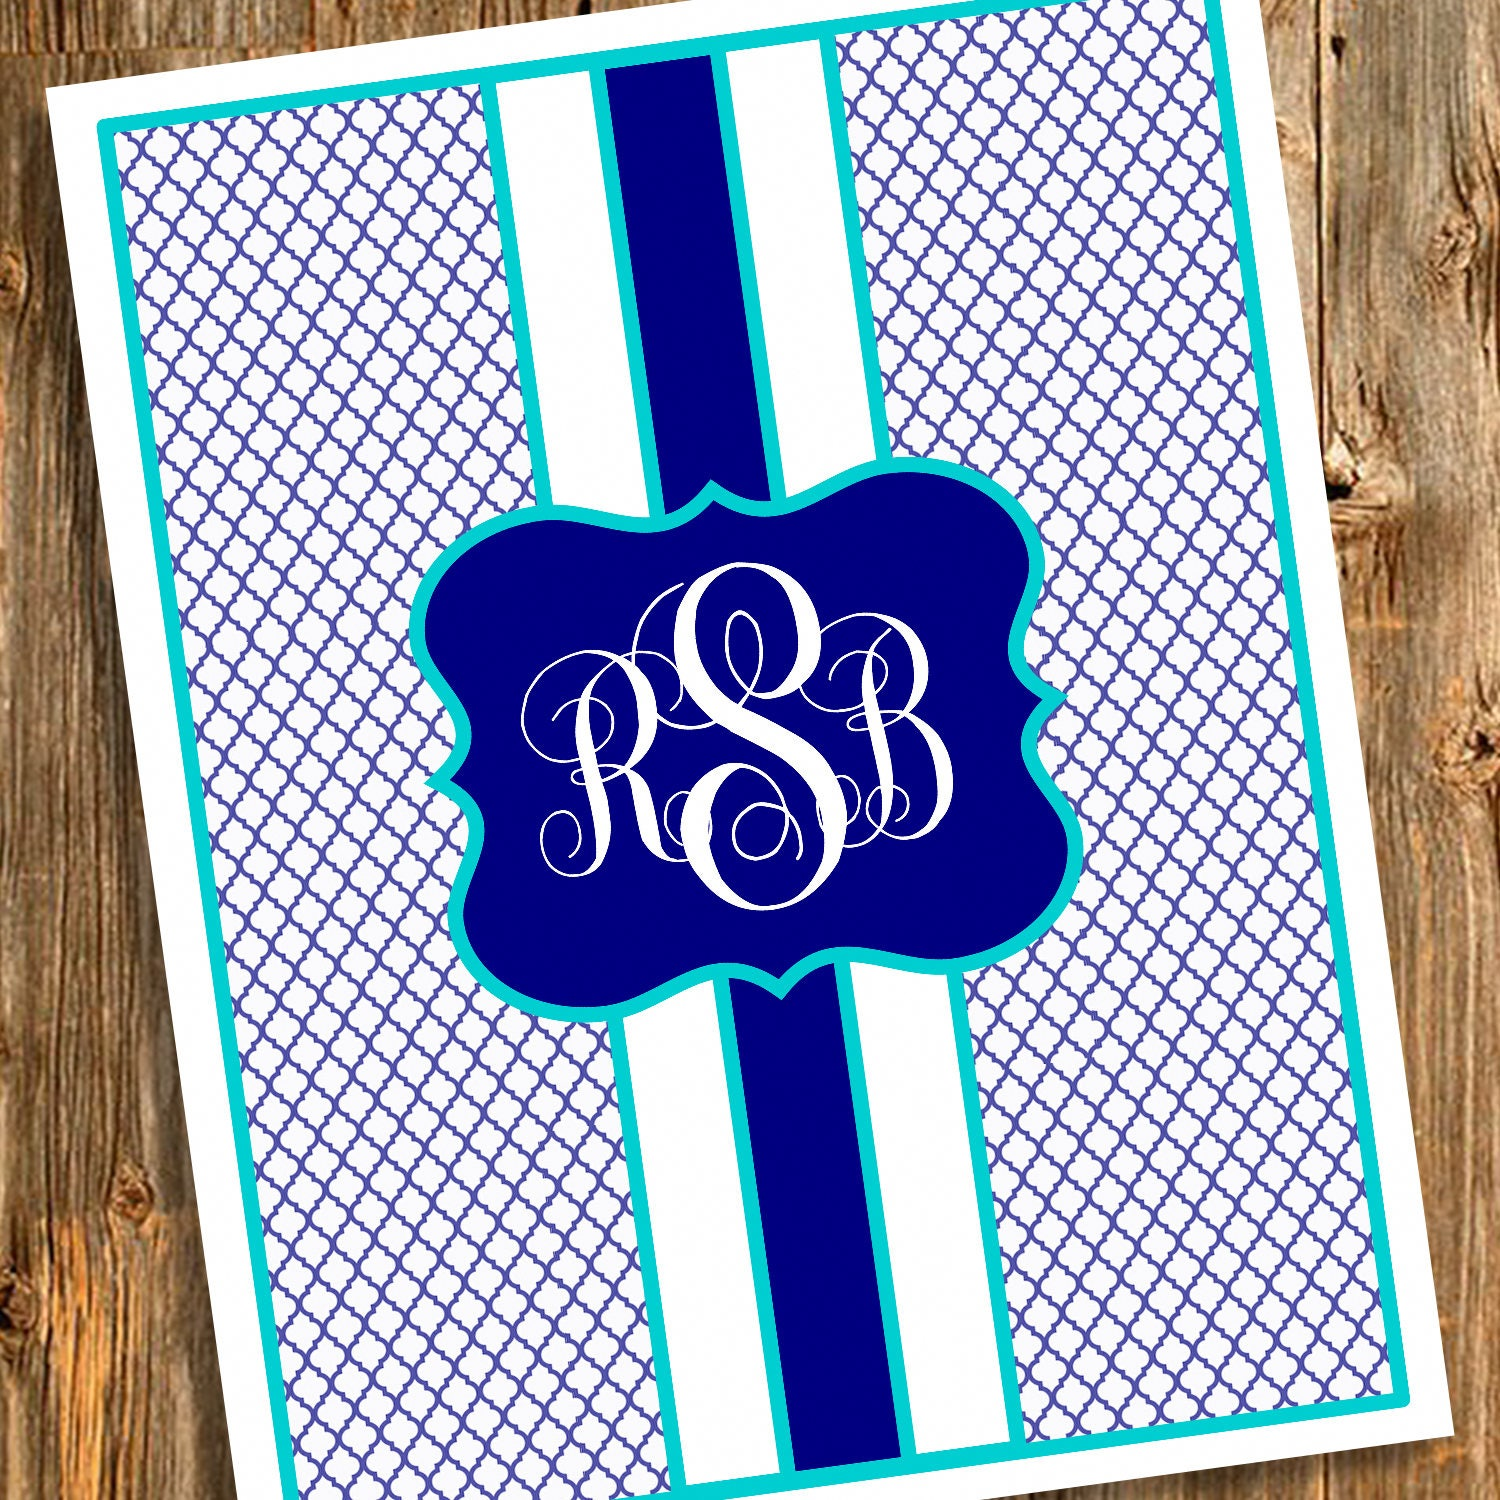 image about Printable Folder titled Printable Folder Design and style for Sorority Recruitment